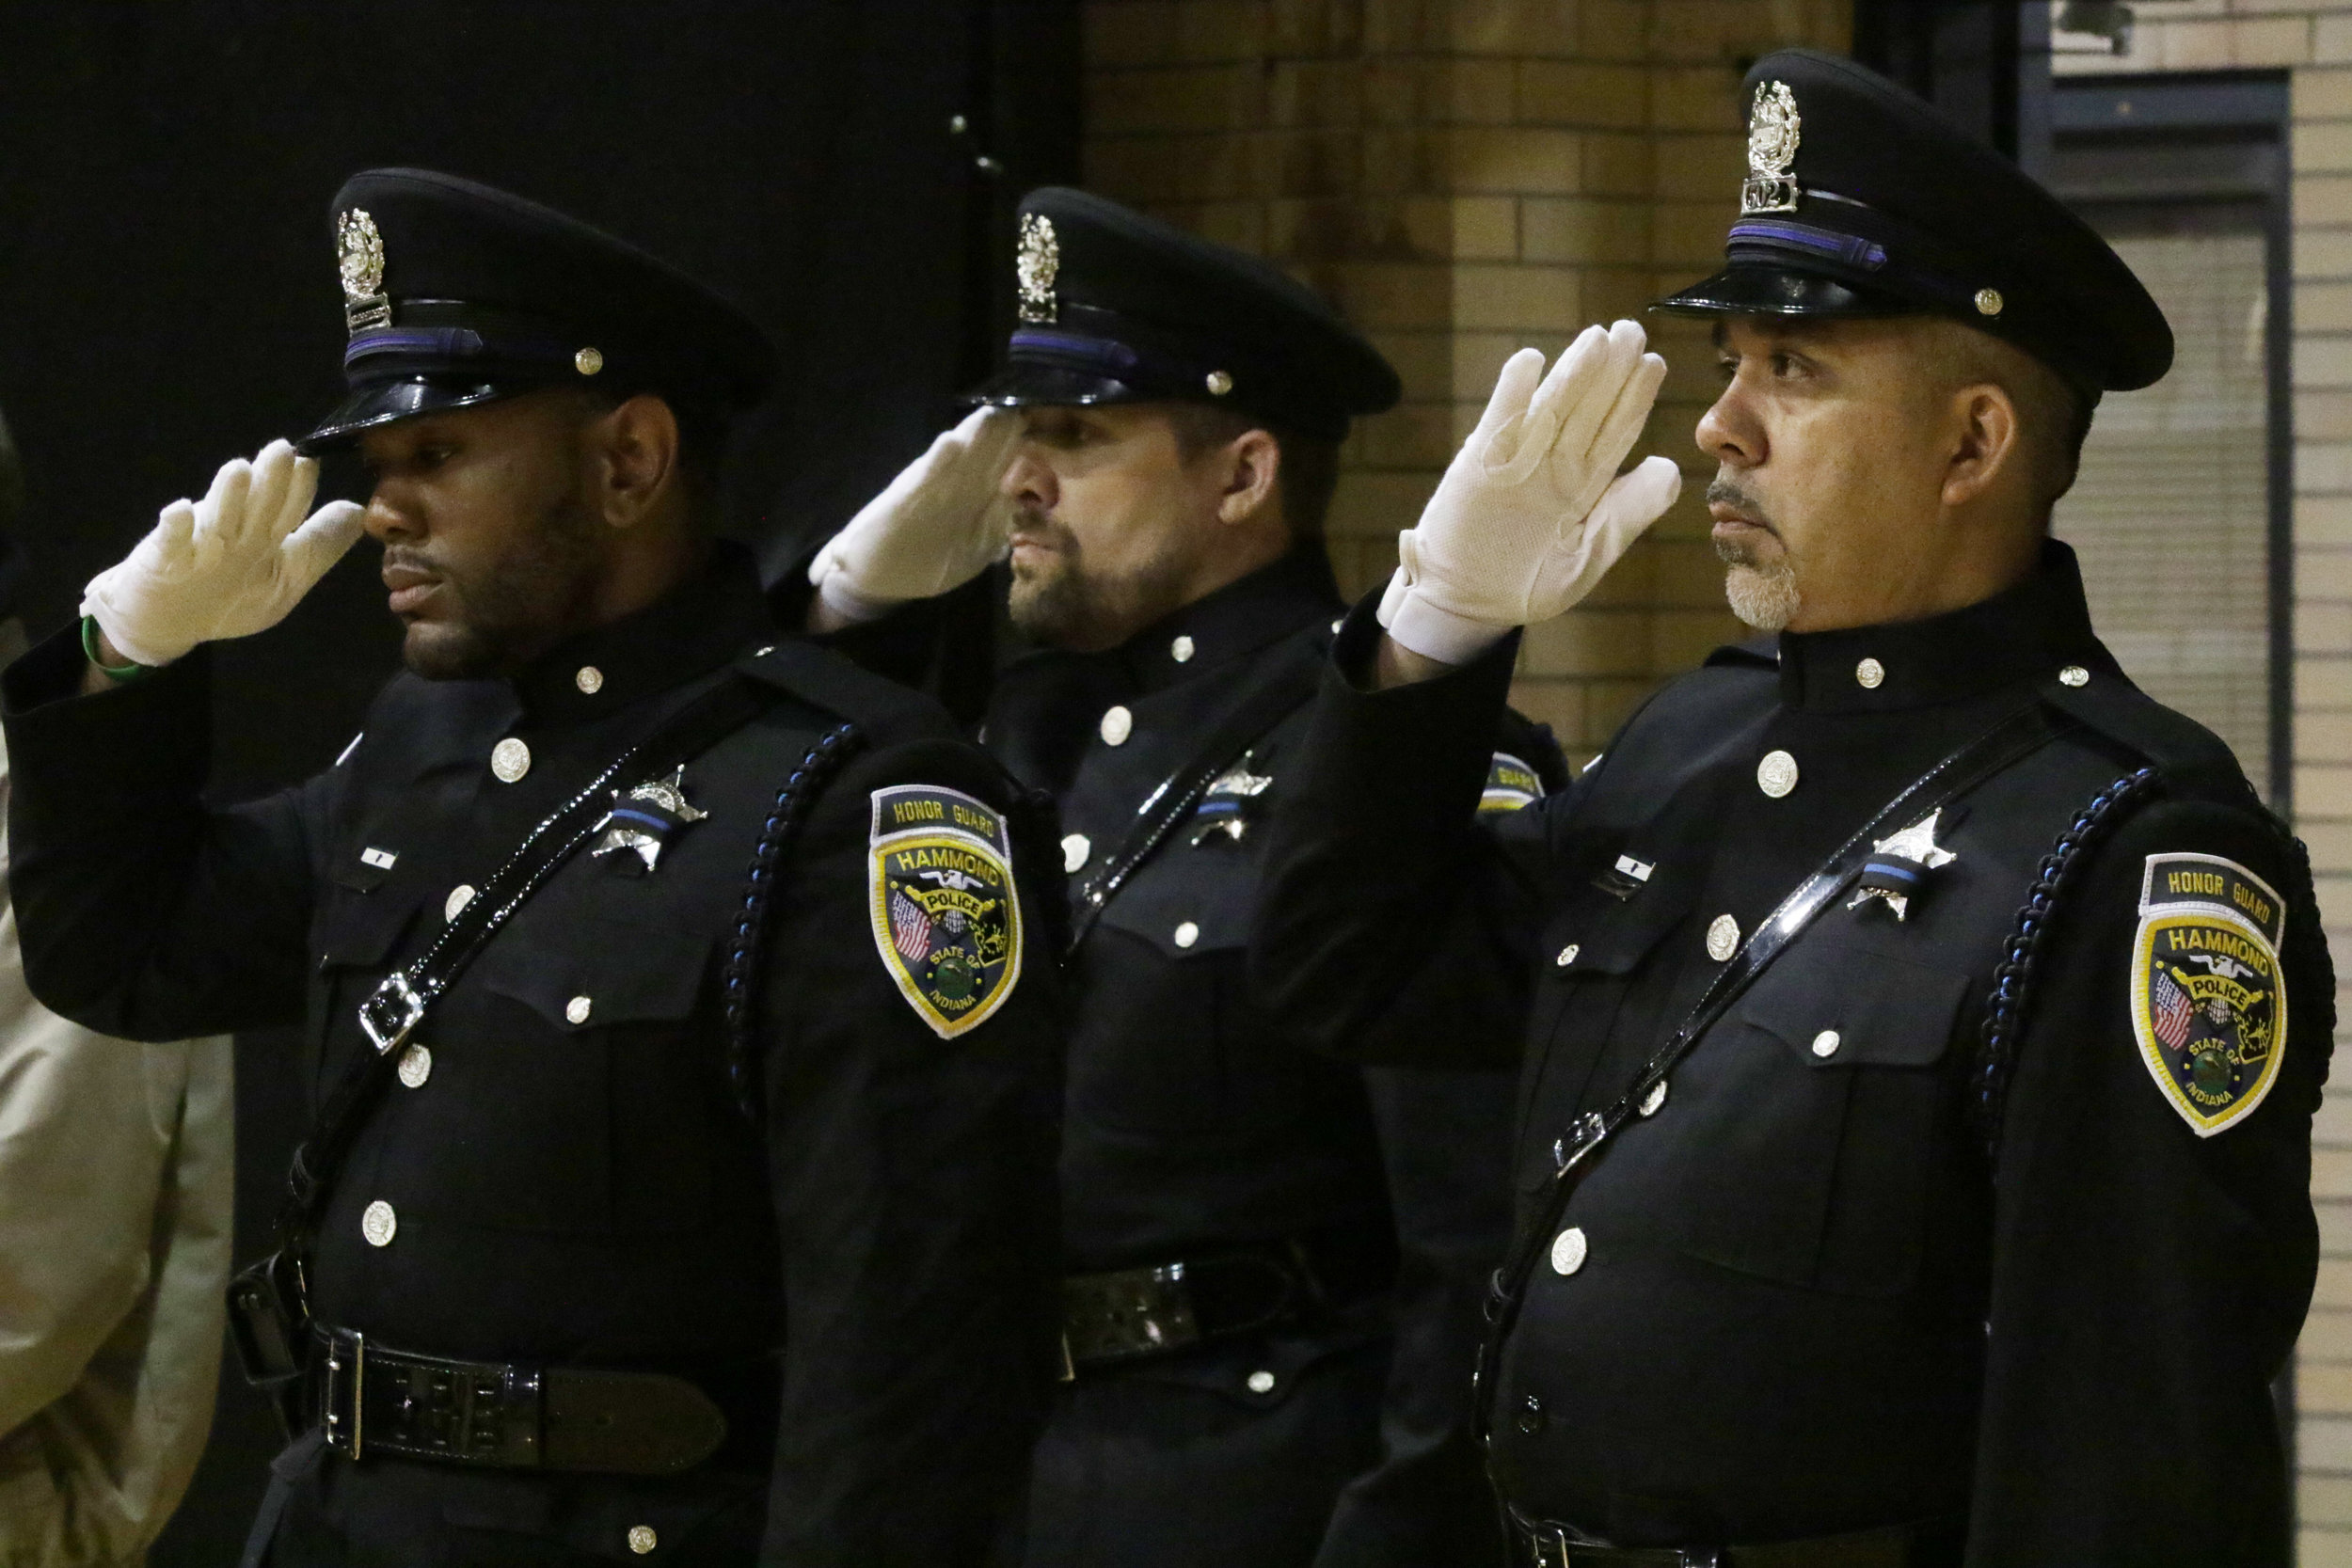 From left, Hammond Officer Jay Woods, Cpl. Ryan Orr and Cpl. Joseph Martinez salute during the national anthem at the Fraternal Order of Police Hammond Lodge #51 Annual Memorial Service at the Hammond Civic Center.